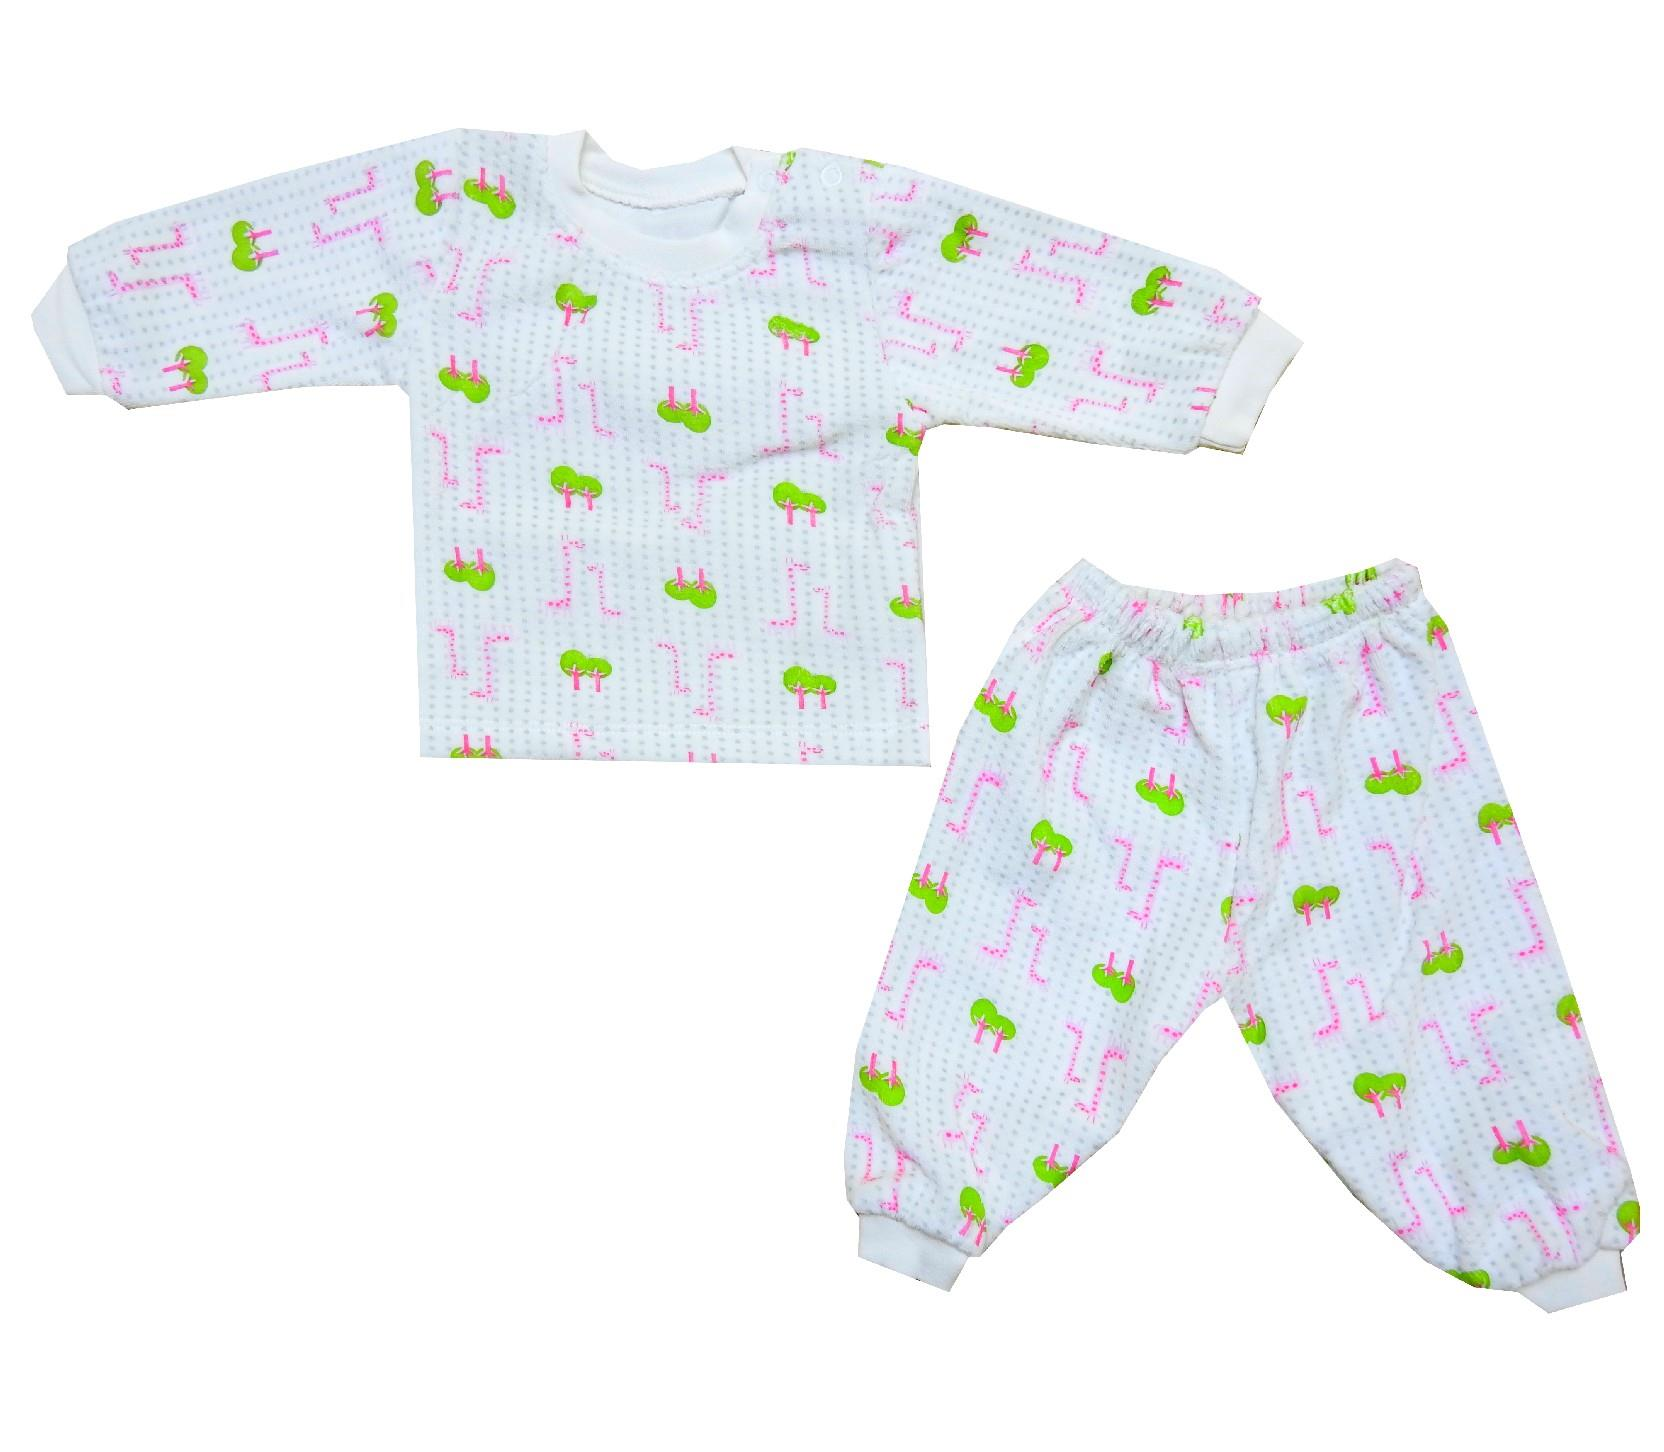 Wholesale embroidery pyjamas for baby (3-6 month)